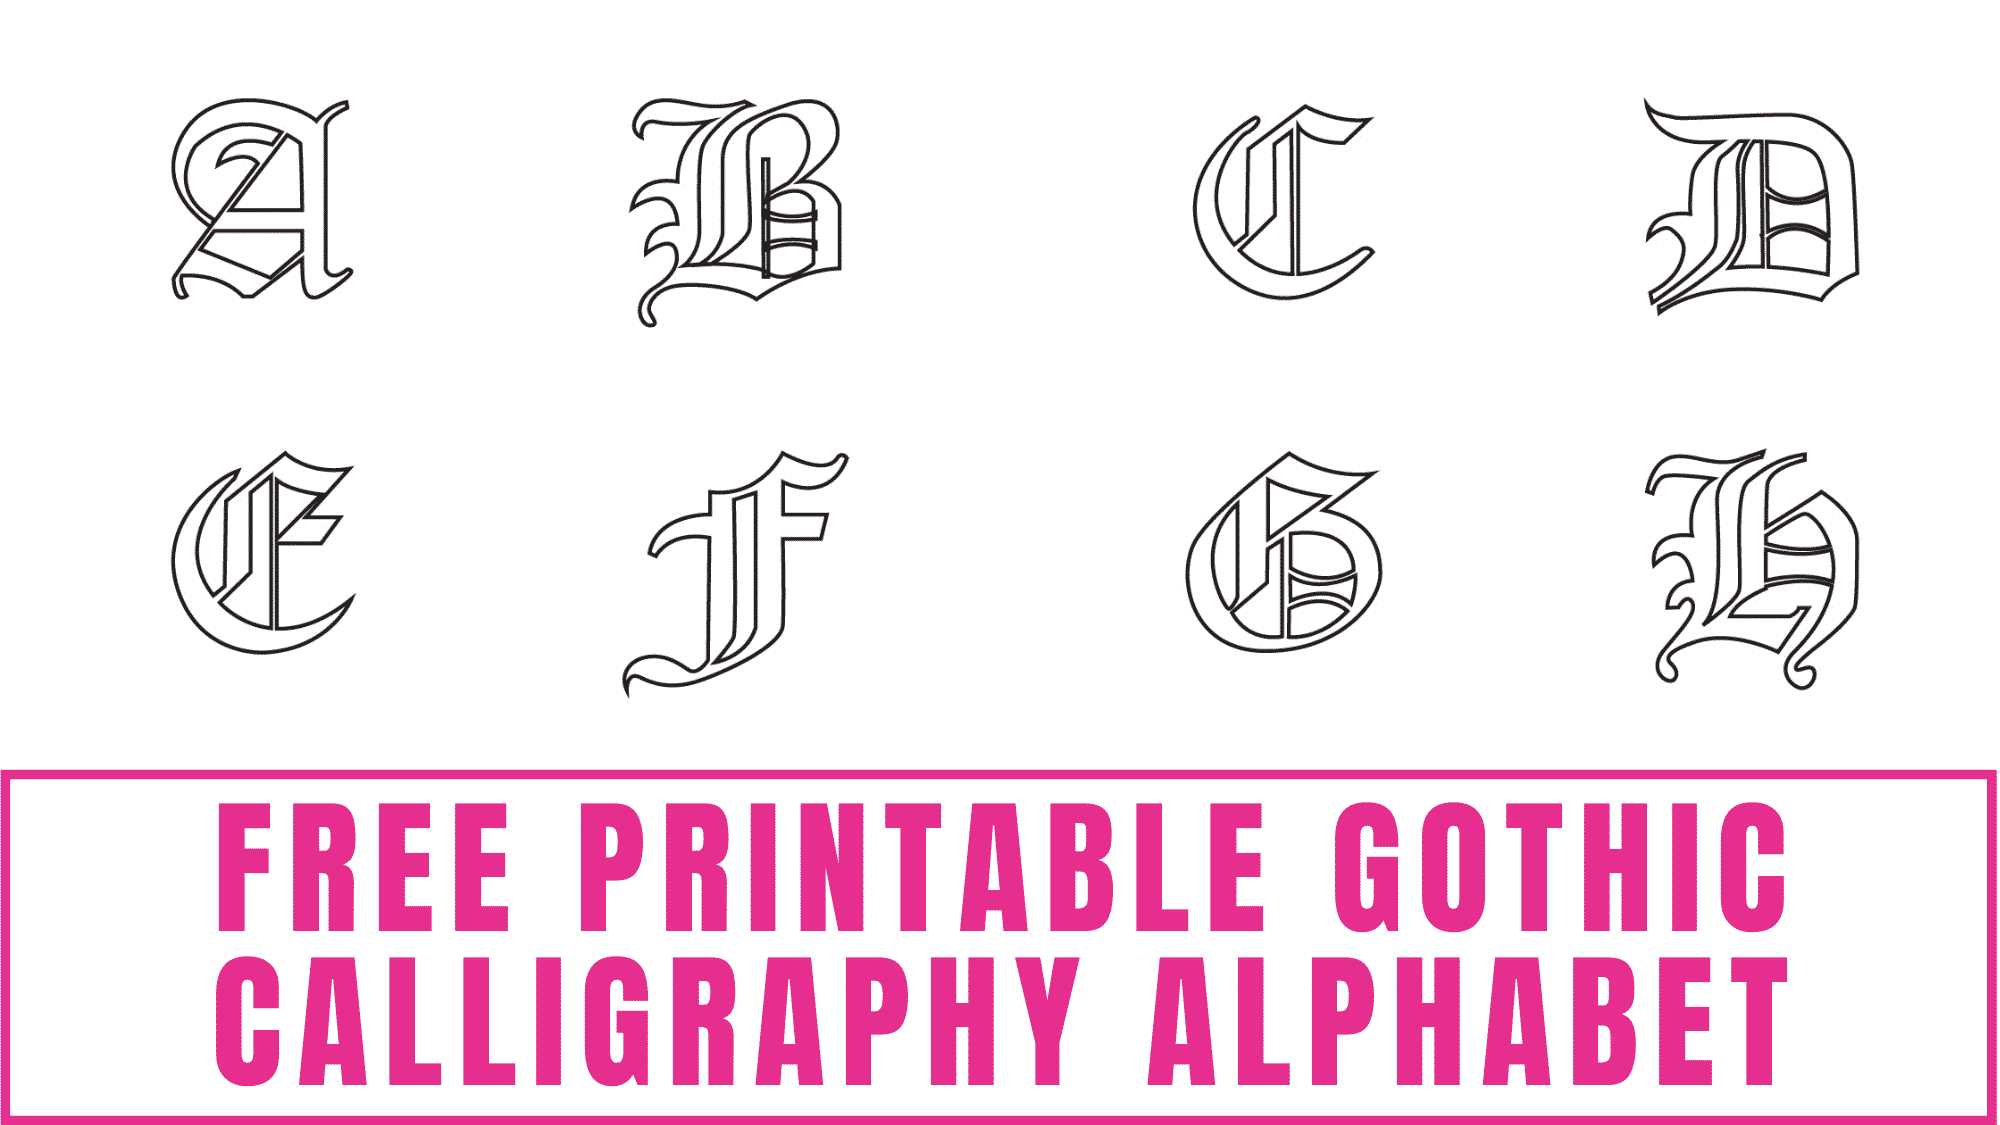 Do you want to learn a new impressive writing style? Though it may be more difficult than most calligraphy fonts this free printable gothic calligraphy alphabet is worth the effort.